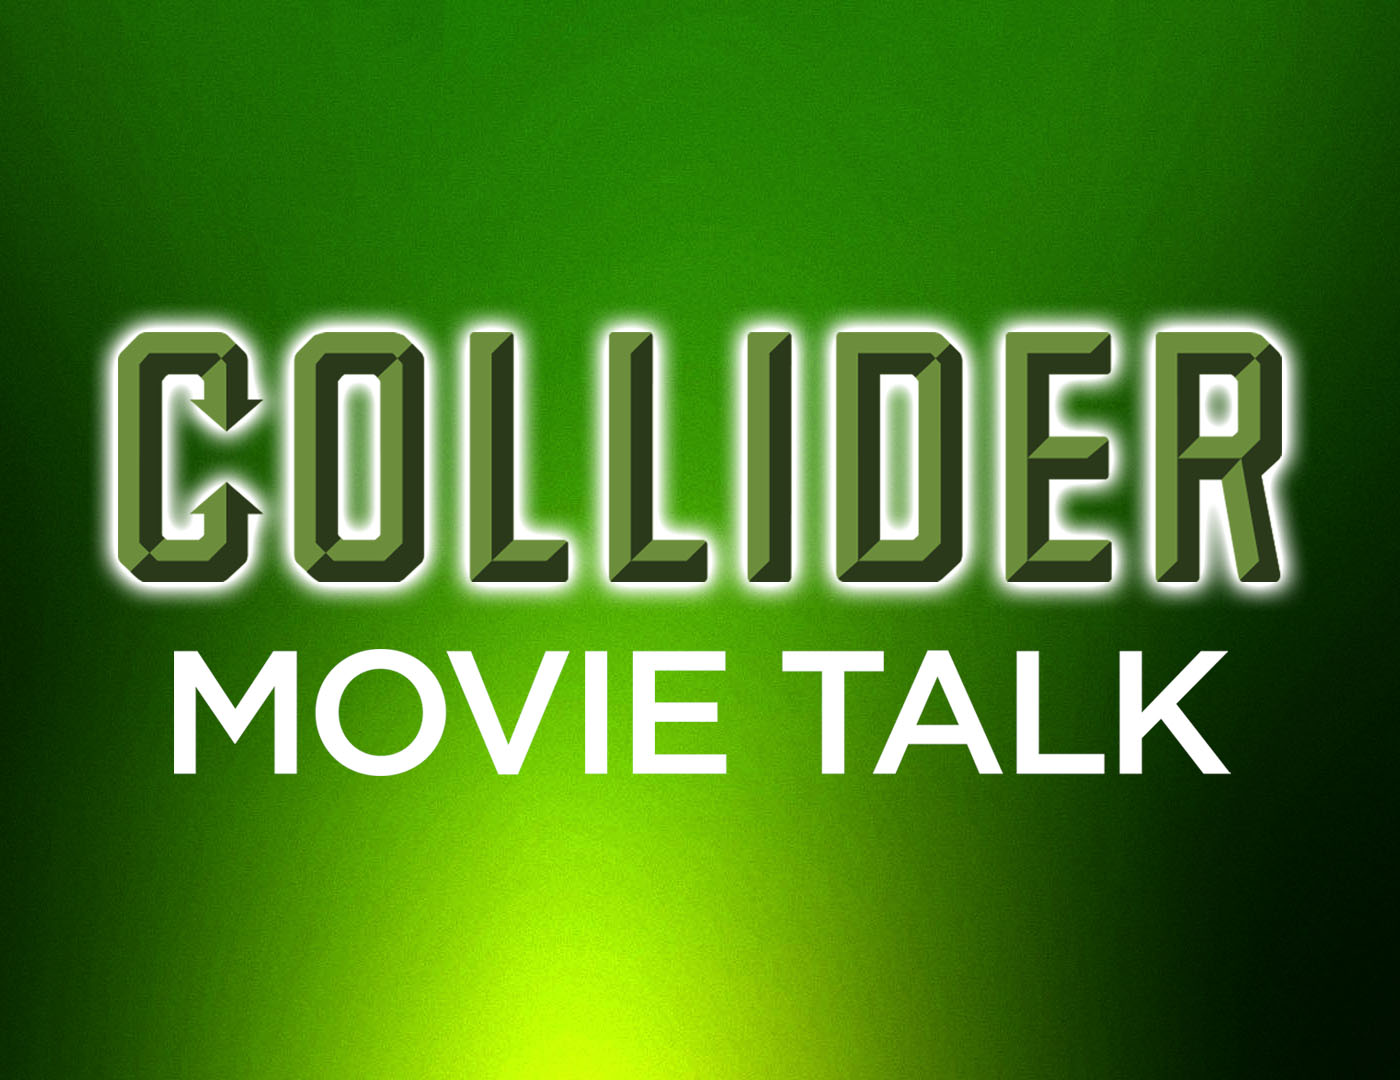 Deadpool Behind The Scenes Drama - Collider Movie Talk